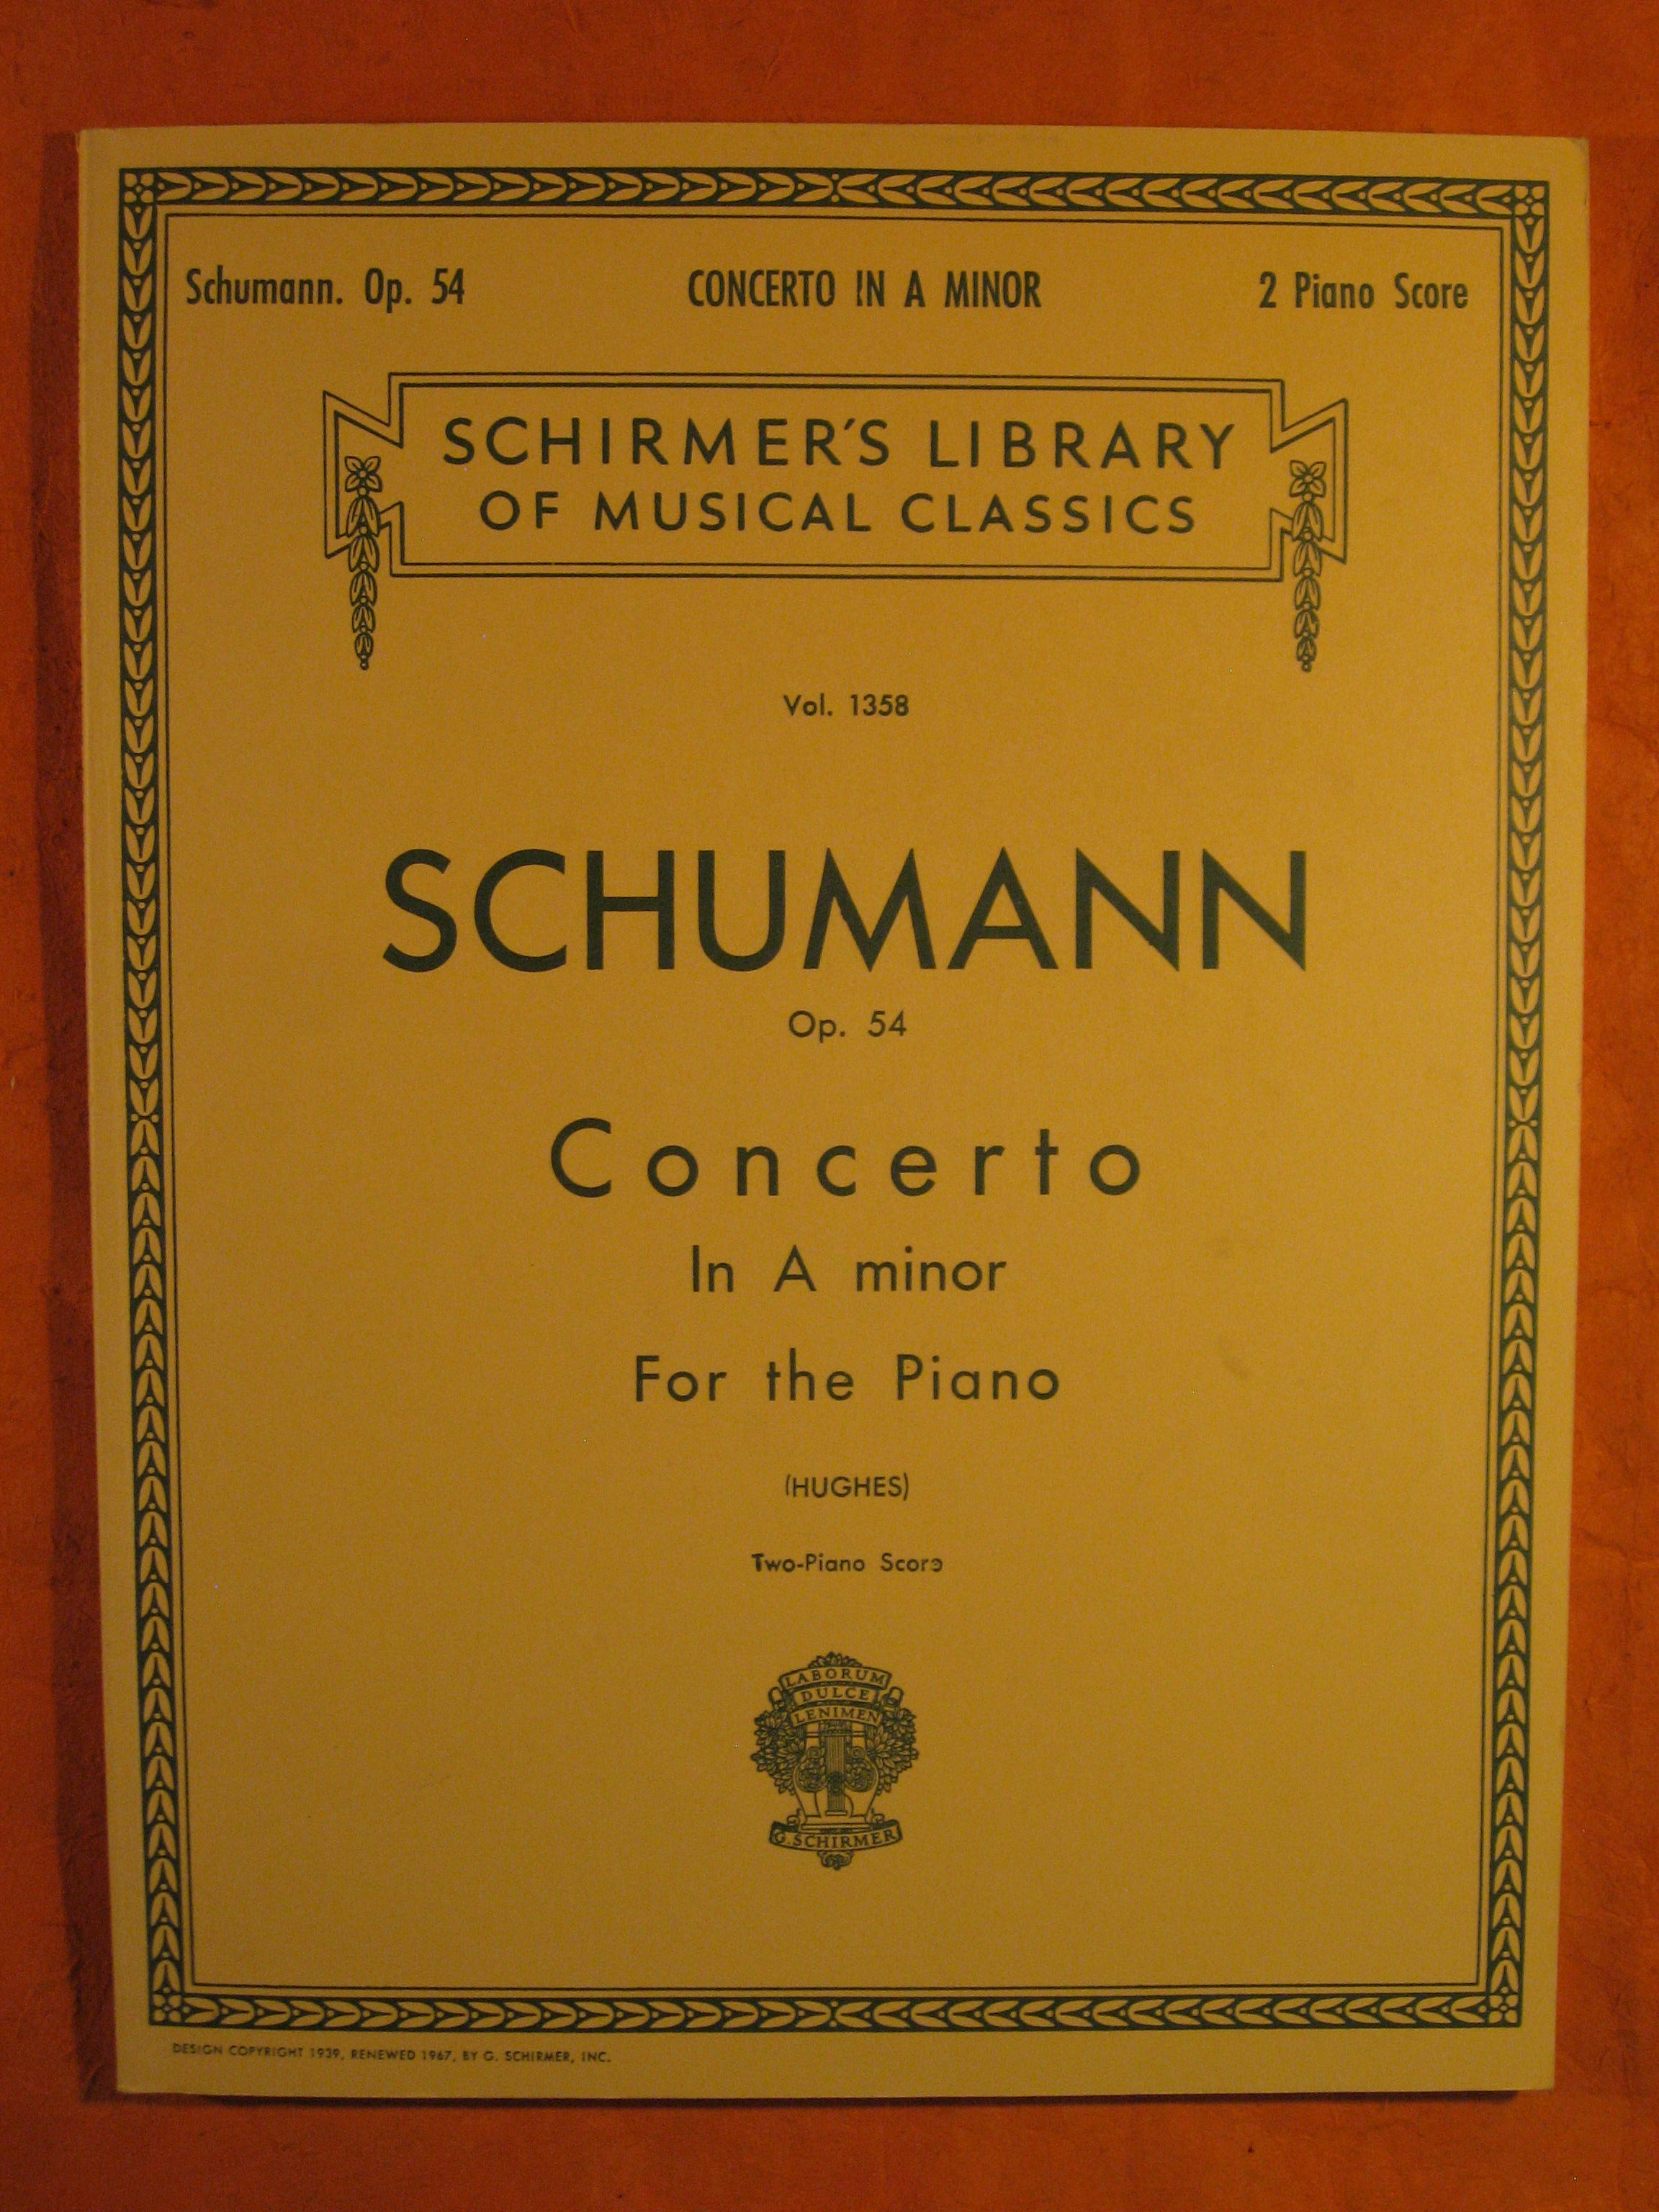 Image for Schumann Op. 54 Concerto in A Minor for the Piano with the Orchestral Accompaniment Arranged for a Second Piano (schirmer's Library of Musical Classics Vol. 1358)